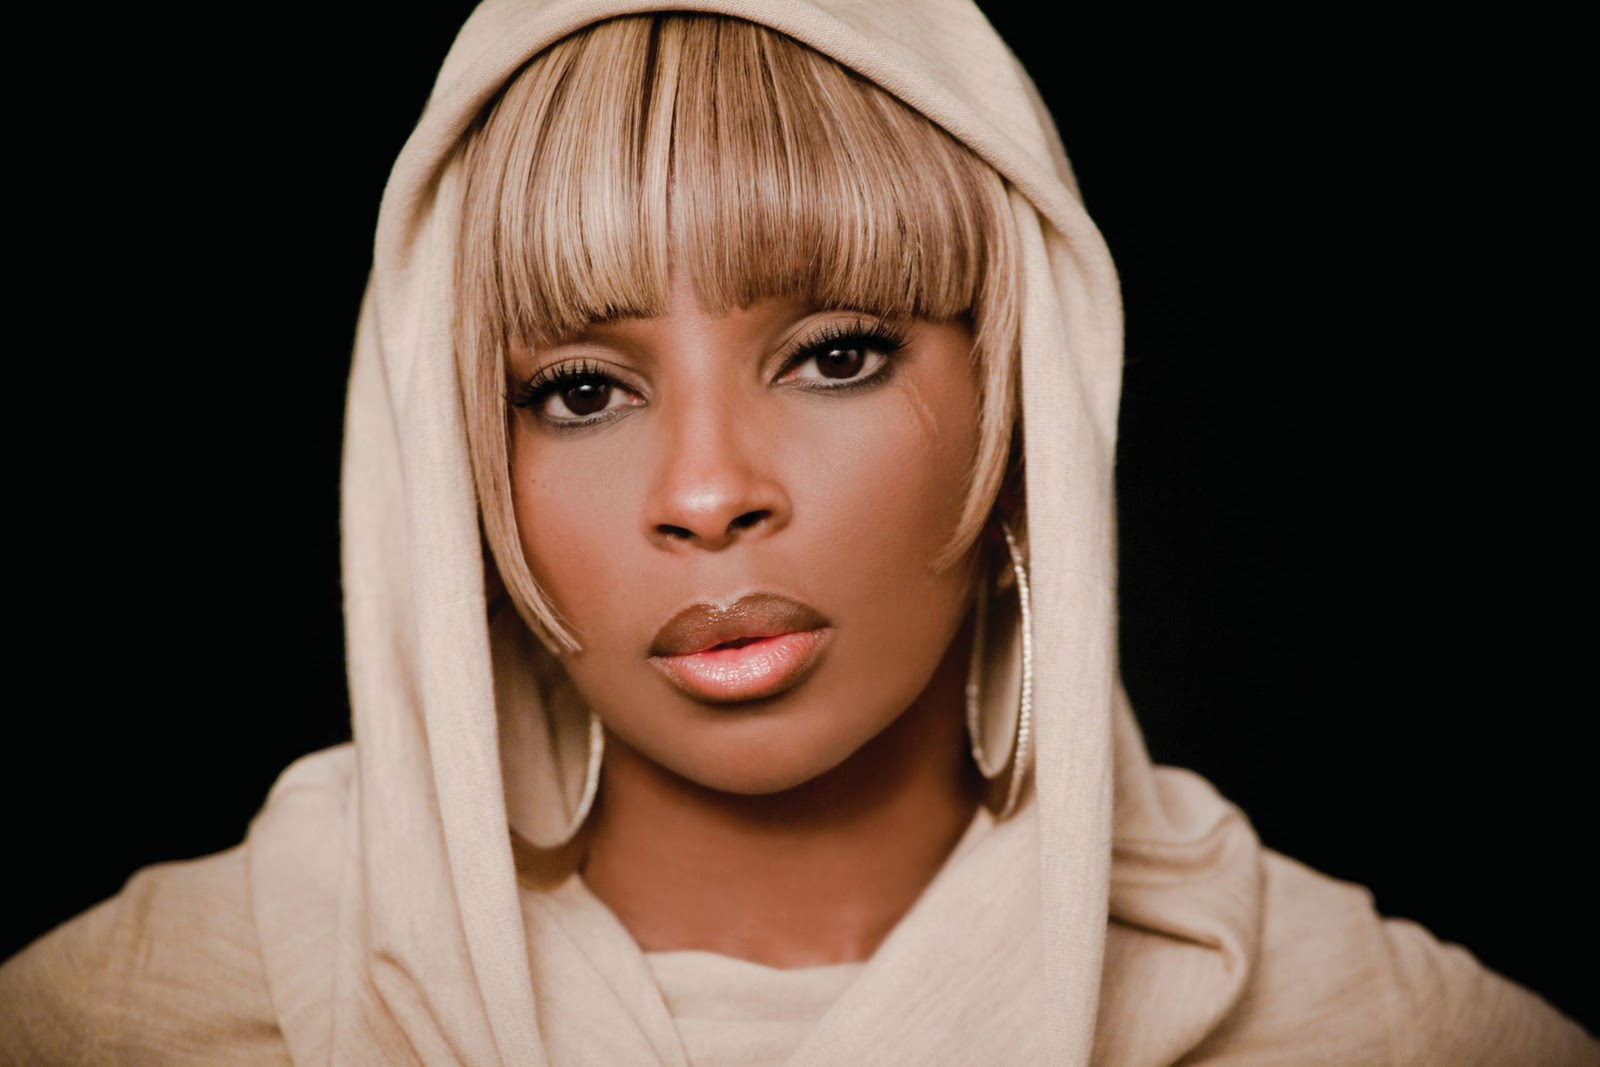 208-Mary-J-Blige-Defaults-Again-1